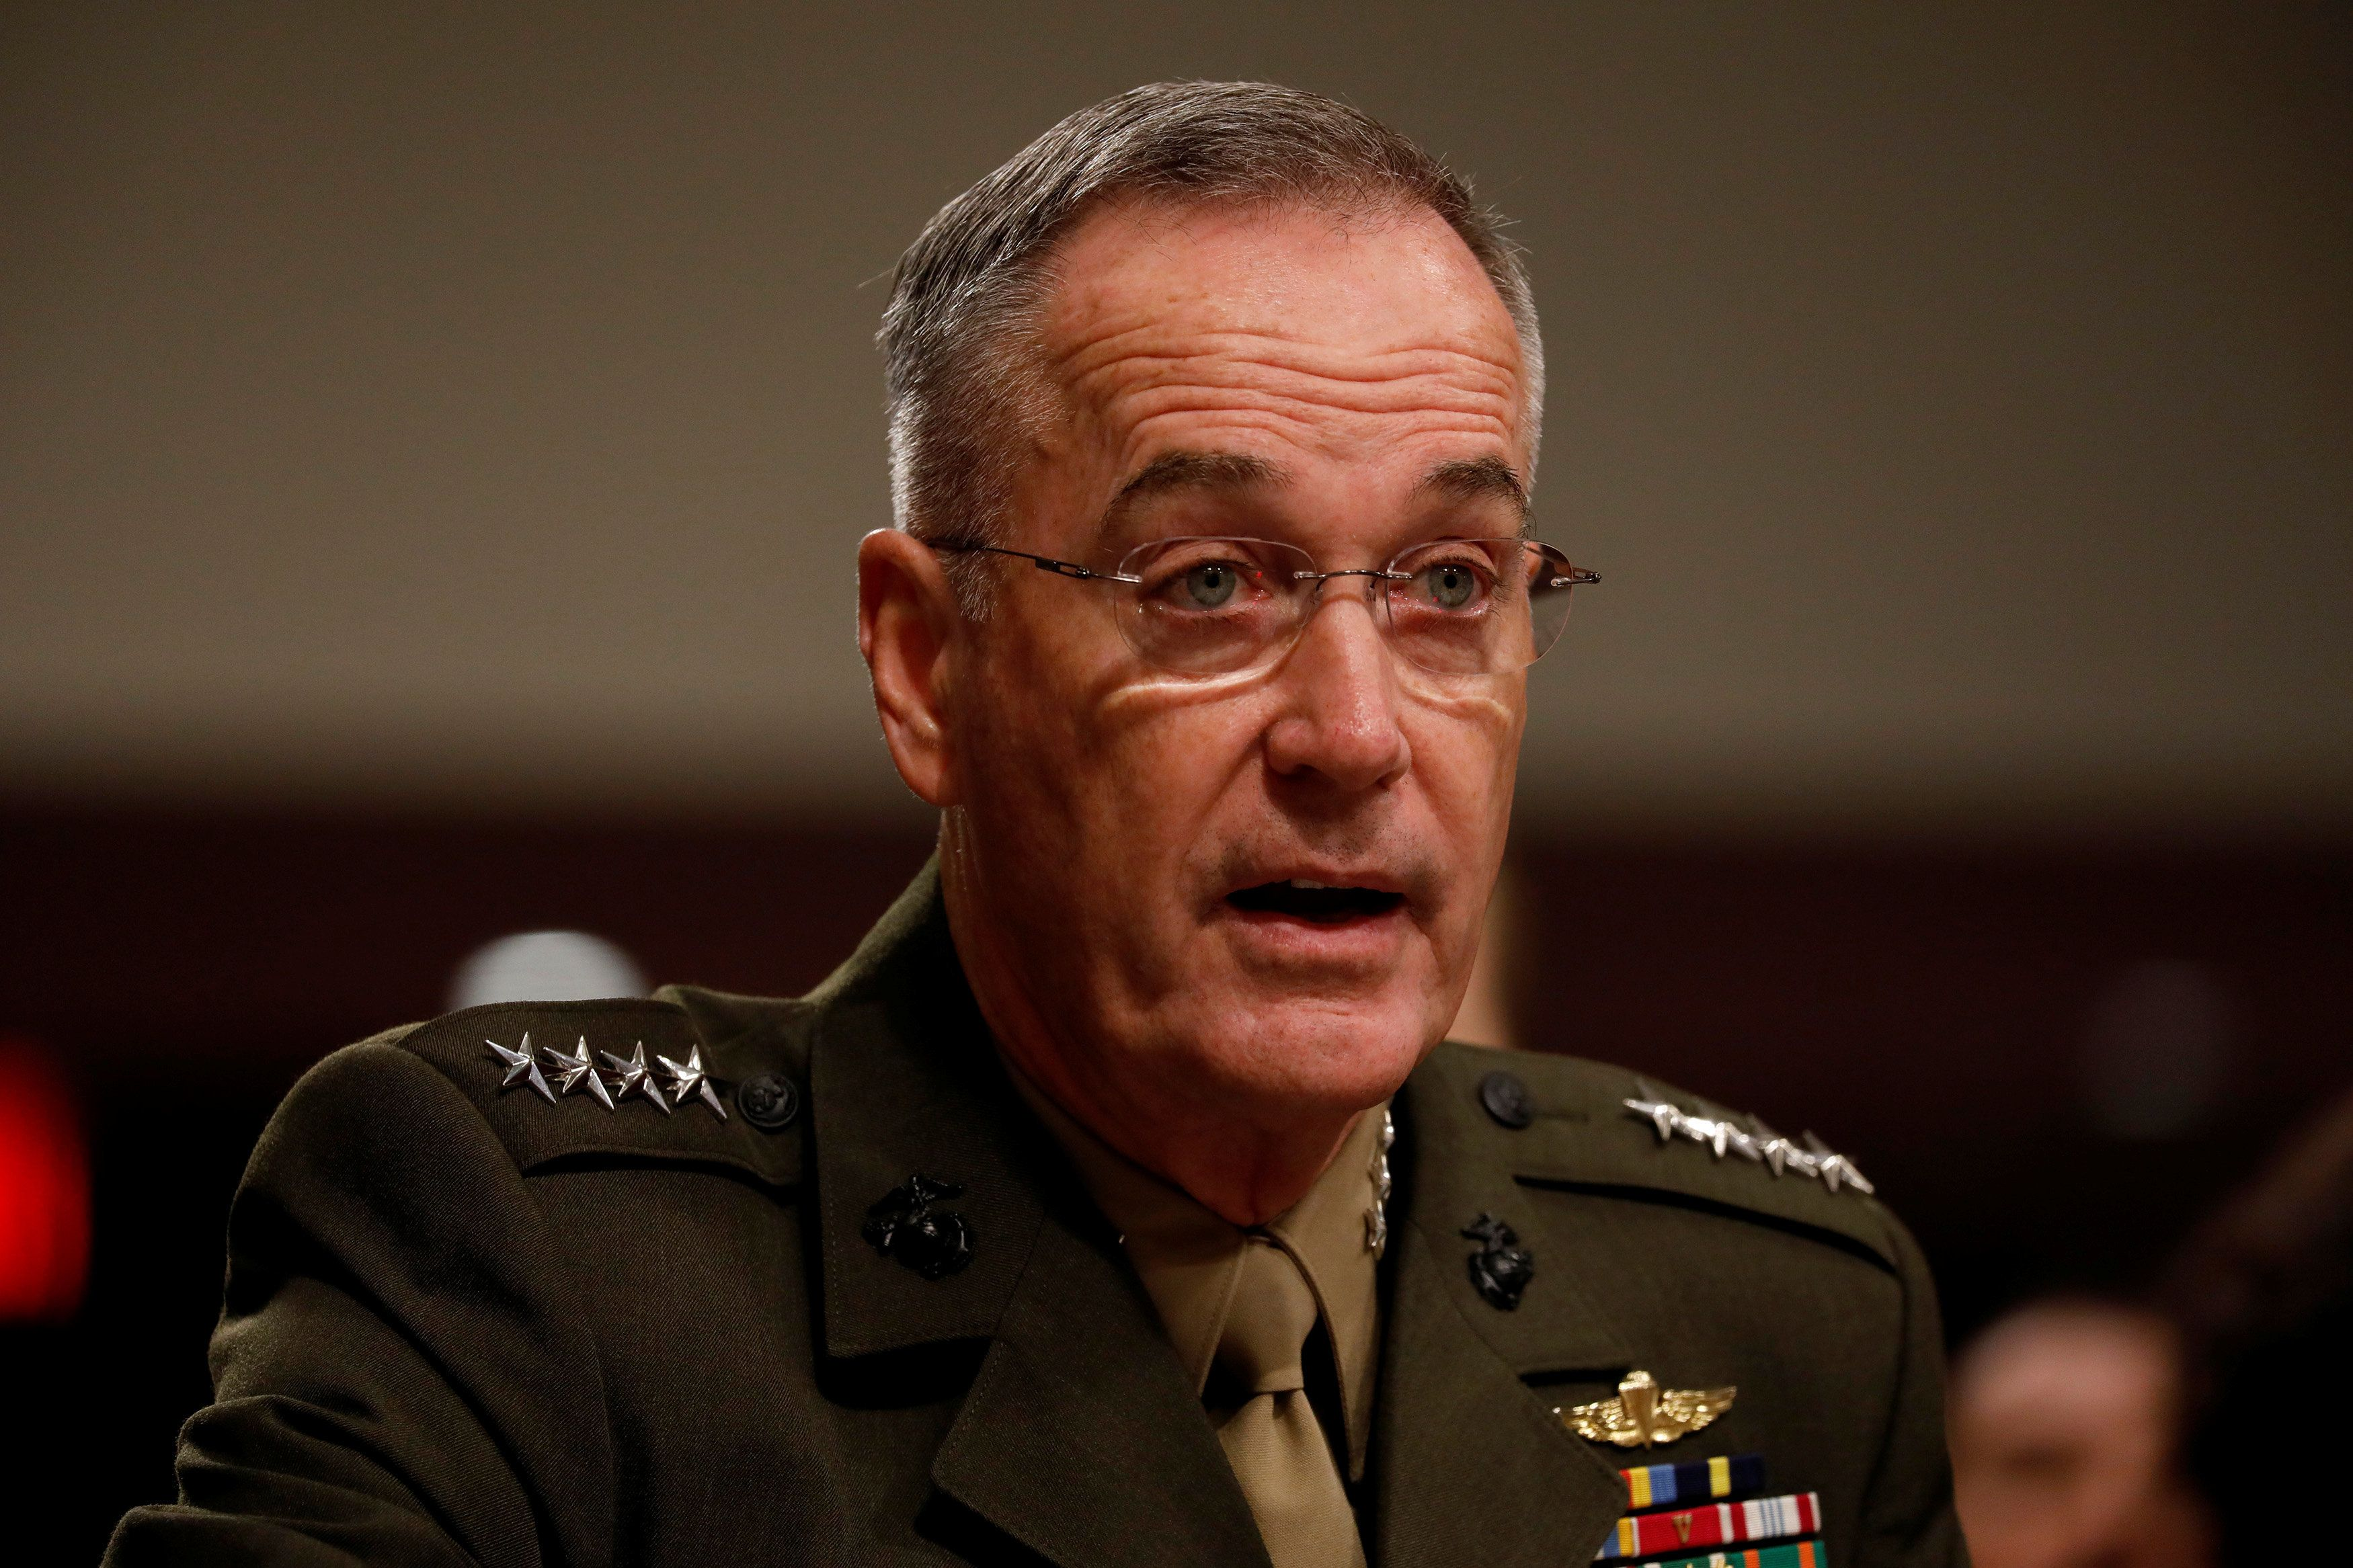 Chairman Of Joint Chiefs Of Staff Says No Changes Yet To Transgender Policy